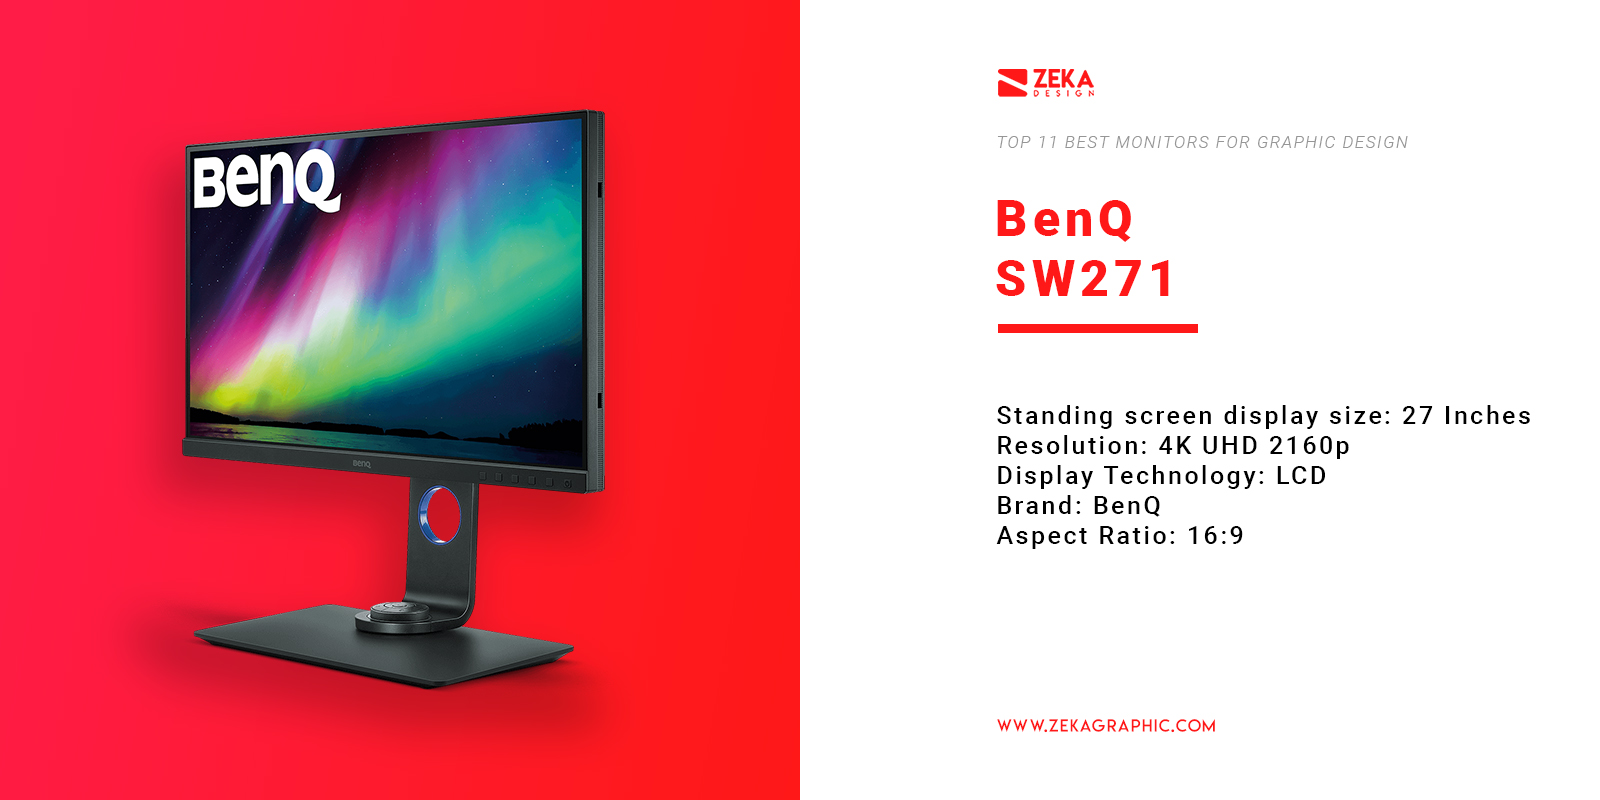 BenQ SW271 4K Monitor for Graphic Design